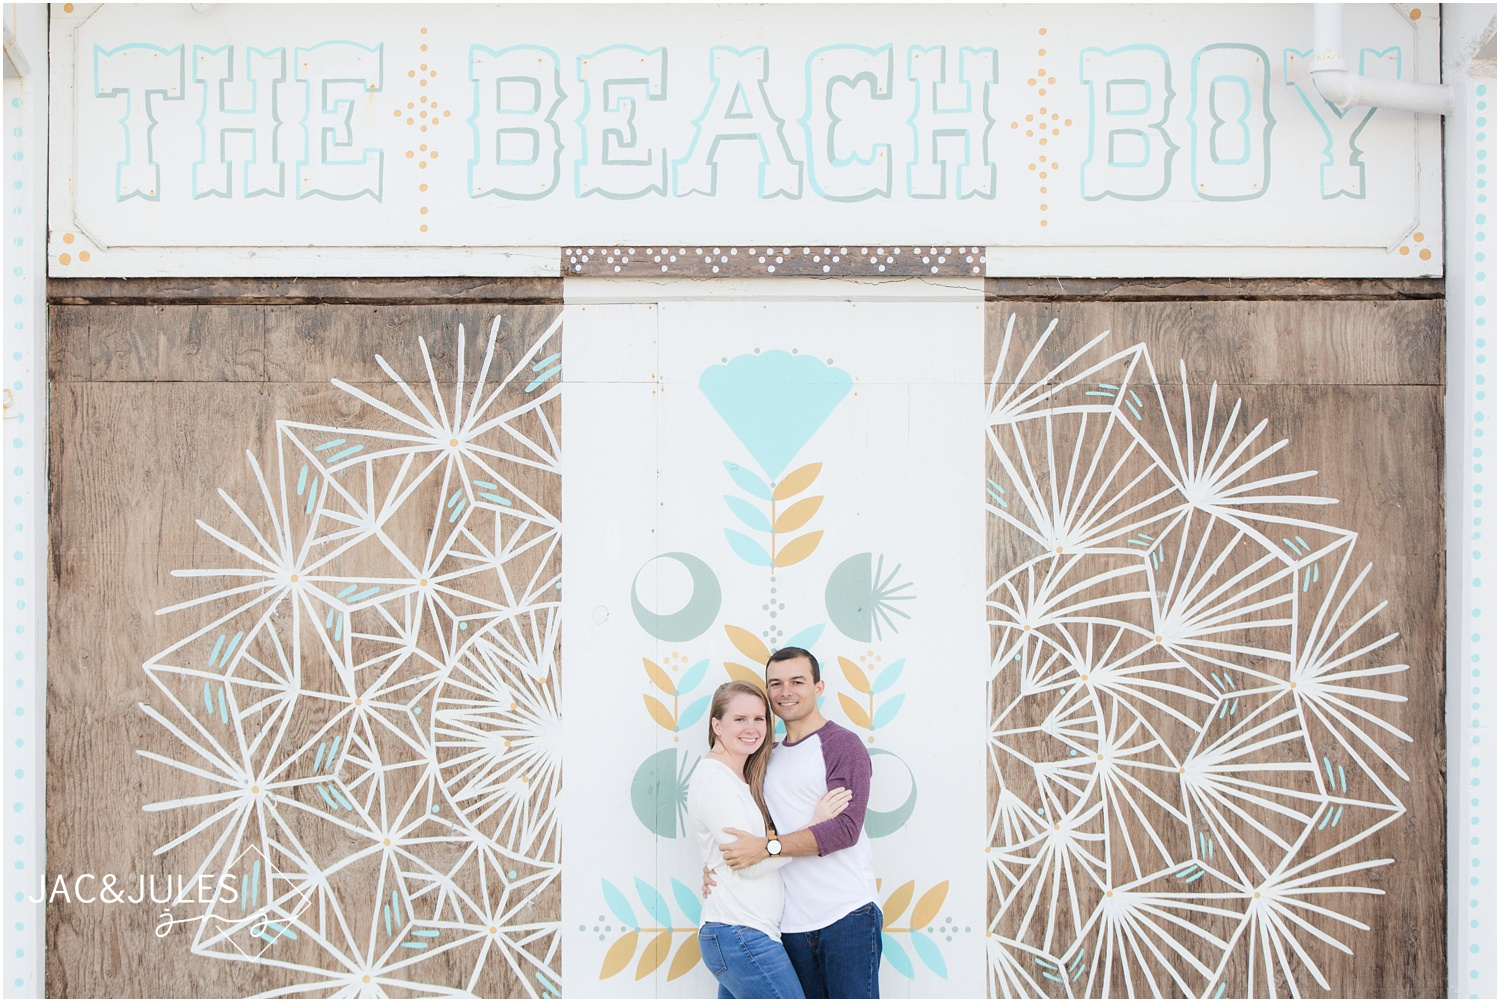 engagement photos by beach boy mural at the Asbury Park Boardwalk